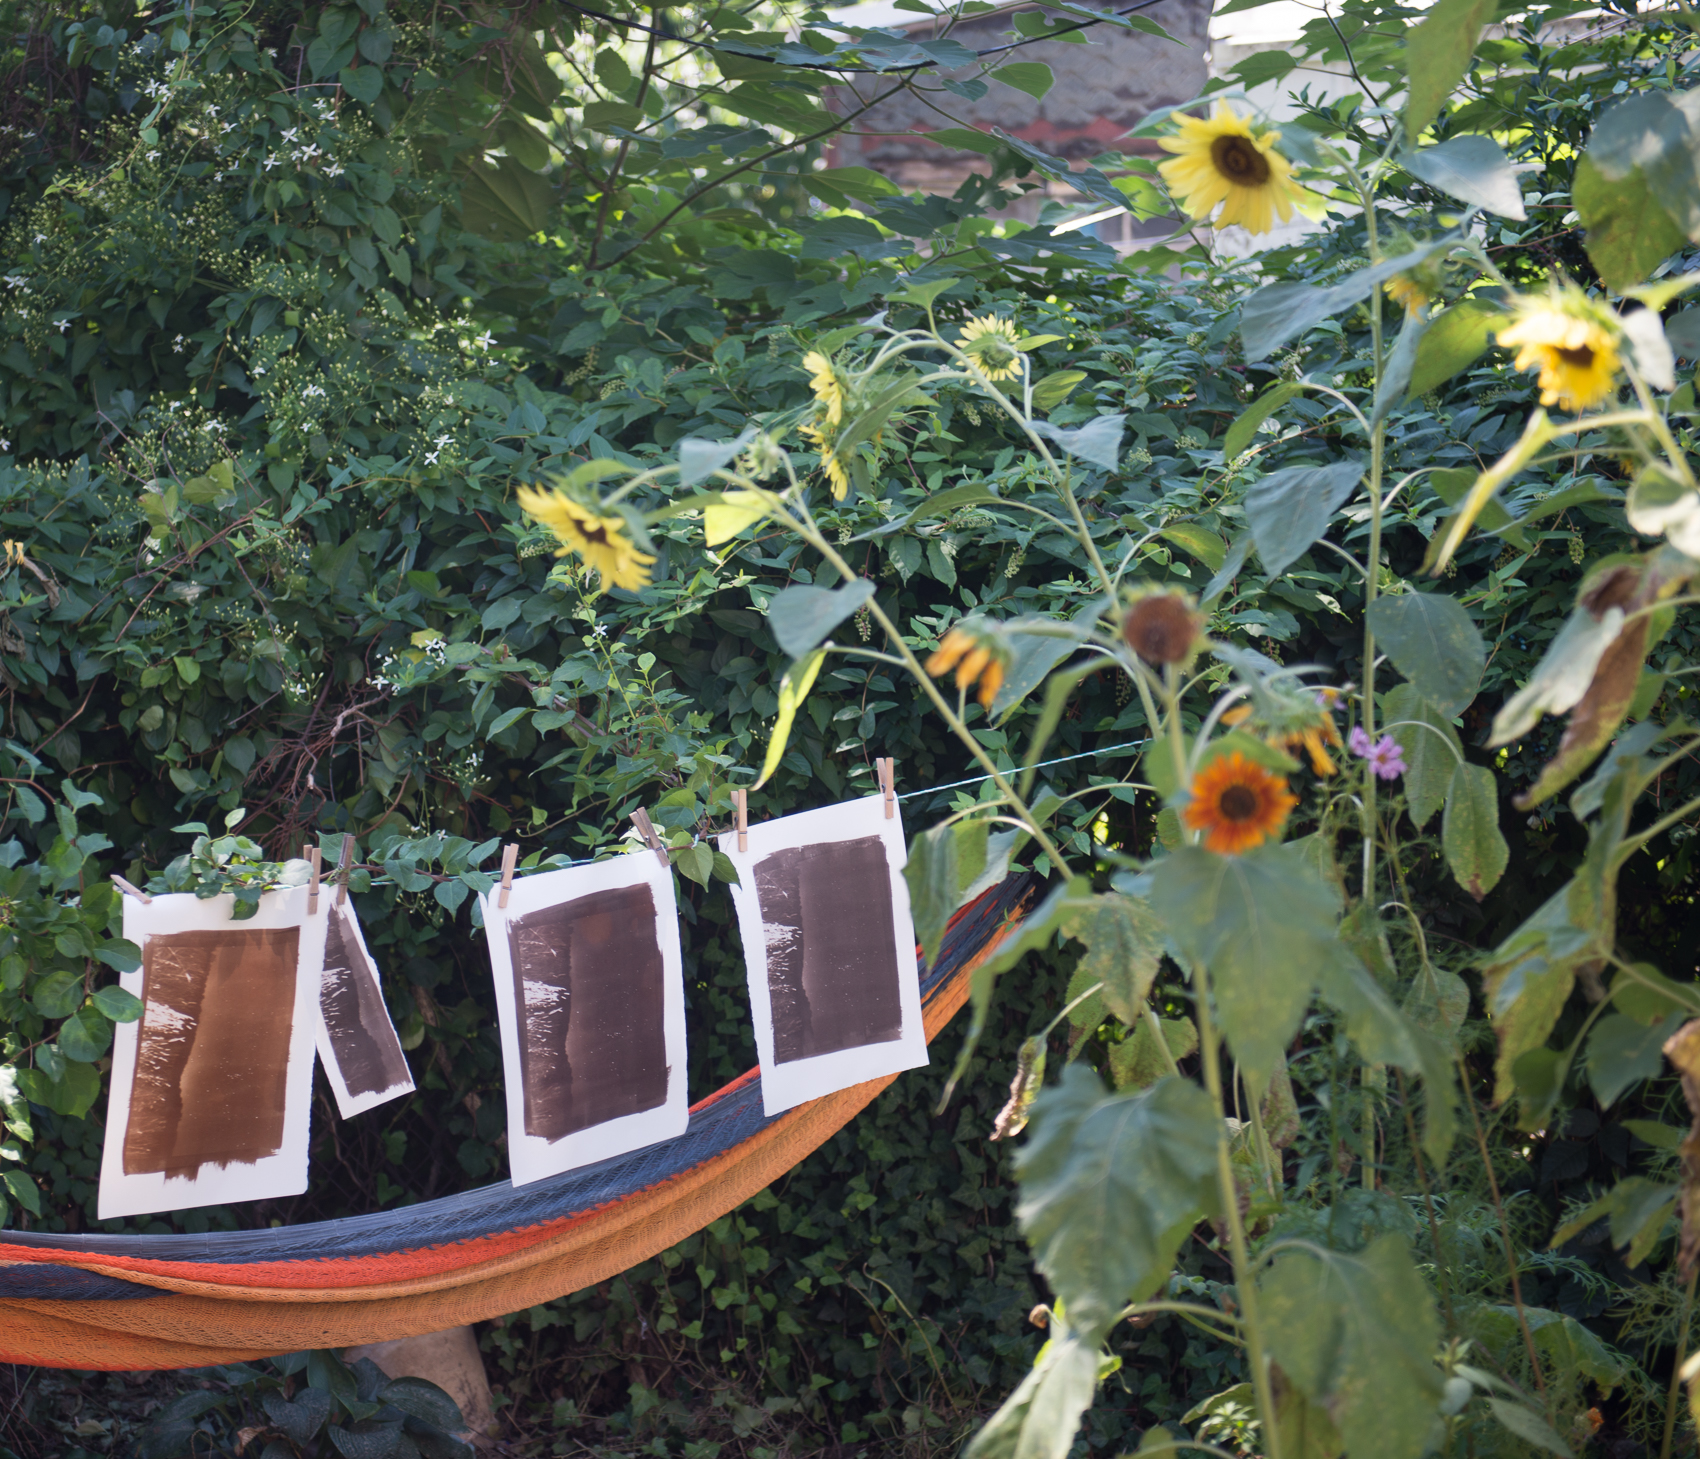 Prints drying on the backyard line - late August 2015